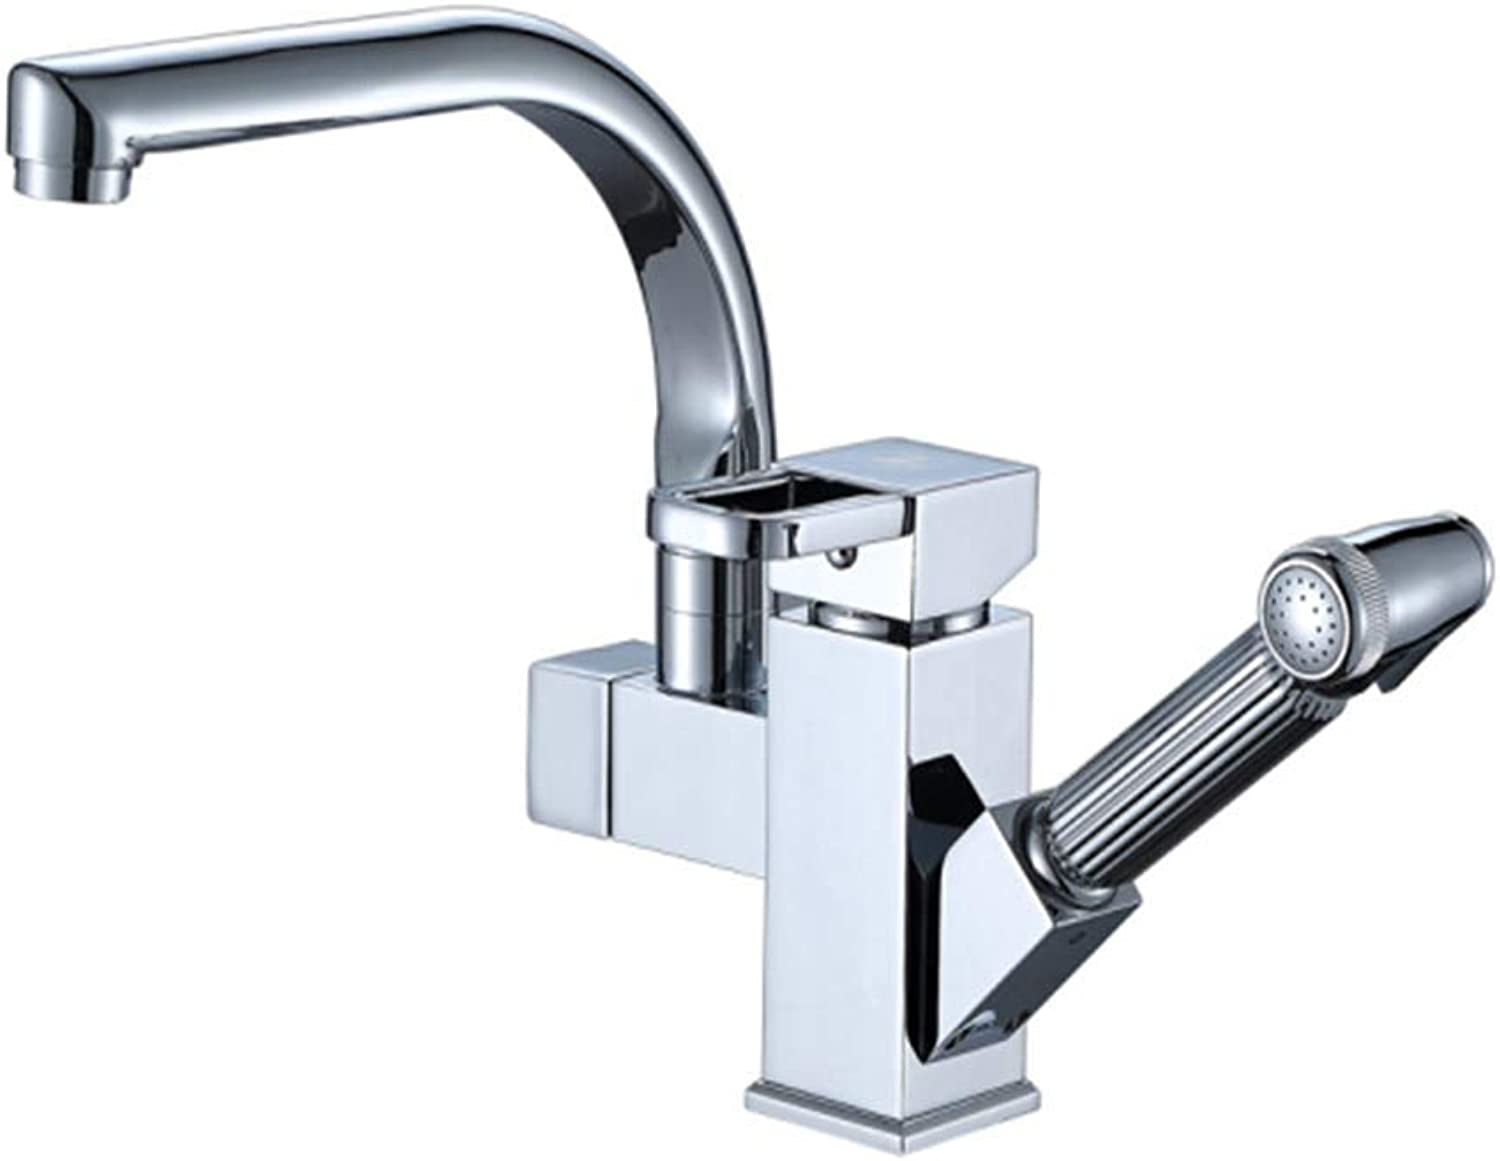 Kitchen Taps Faucet Modern Kitchen Sink Taps Stainless Steelfaucet Pumping Faucet Cold and Hot Basin Faucet Kitchen Faucet Bathroom Faucet Faucet Sink Faucet